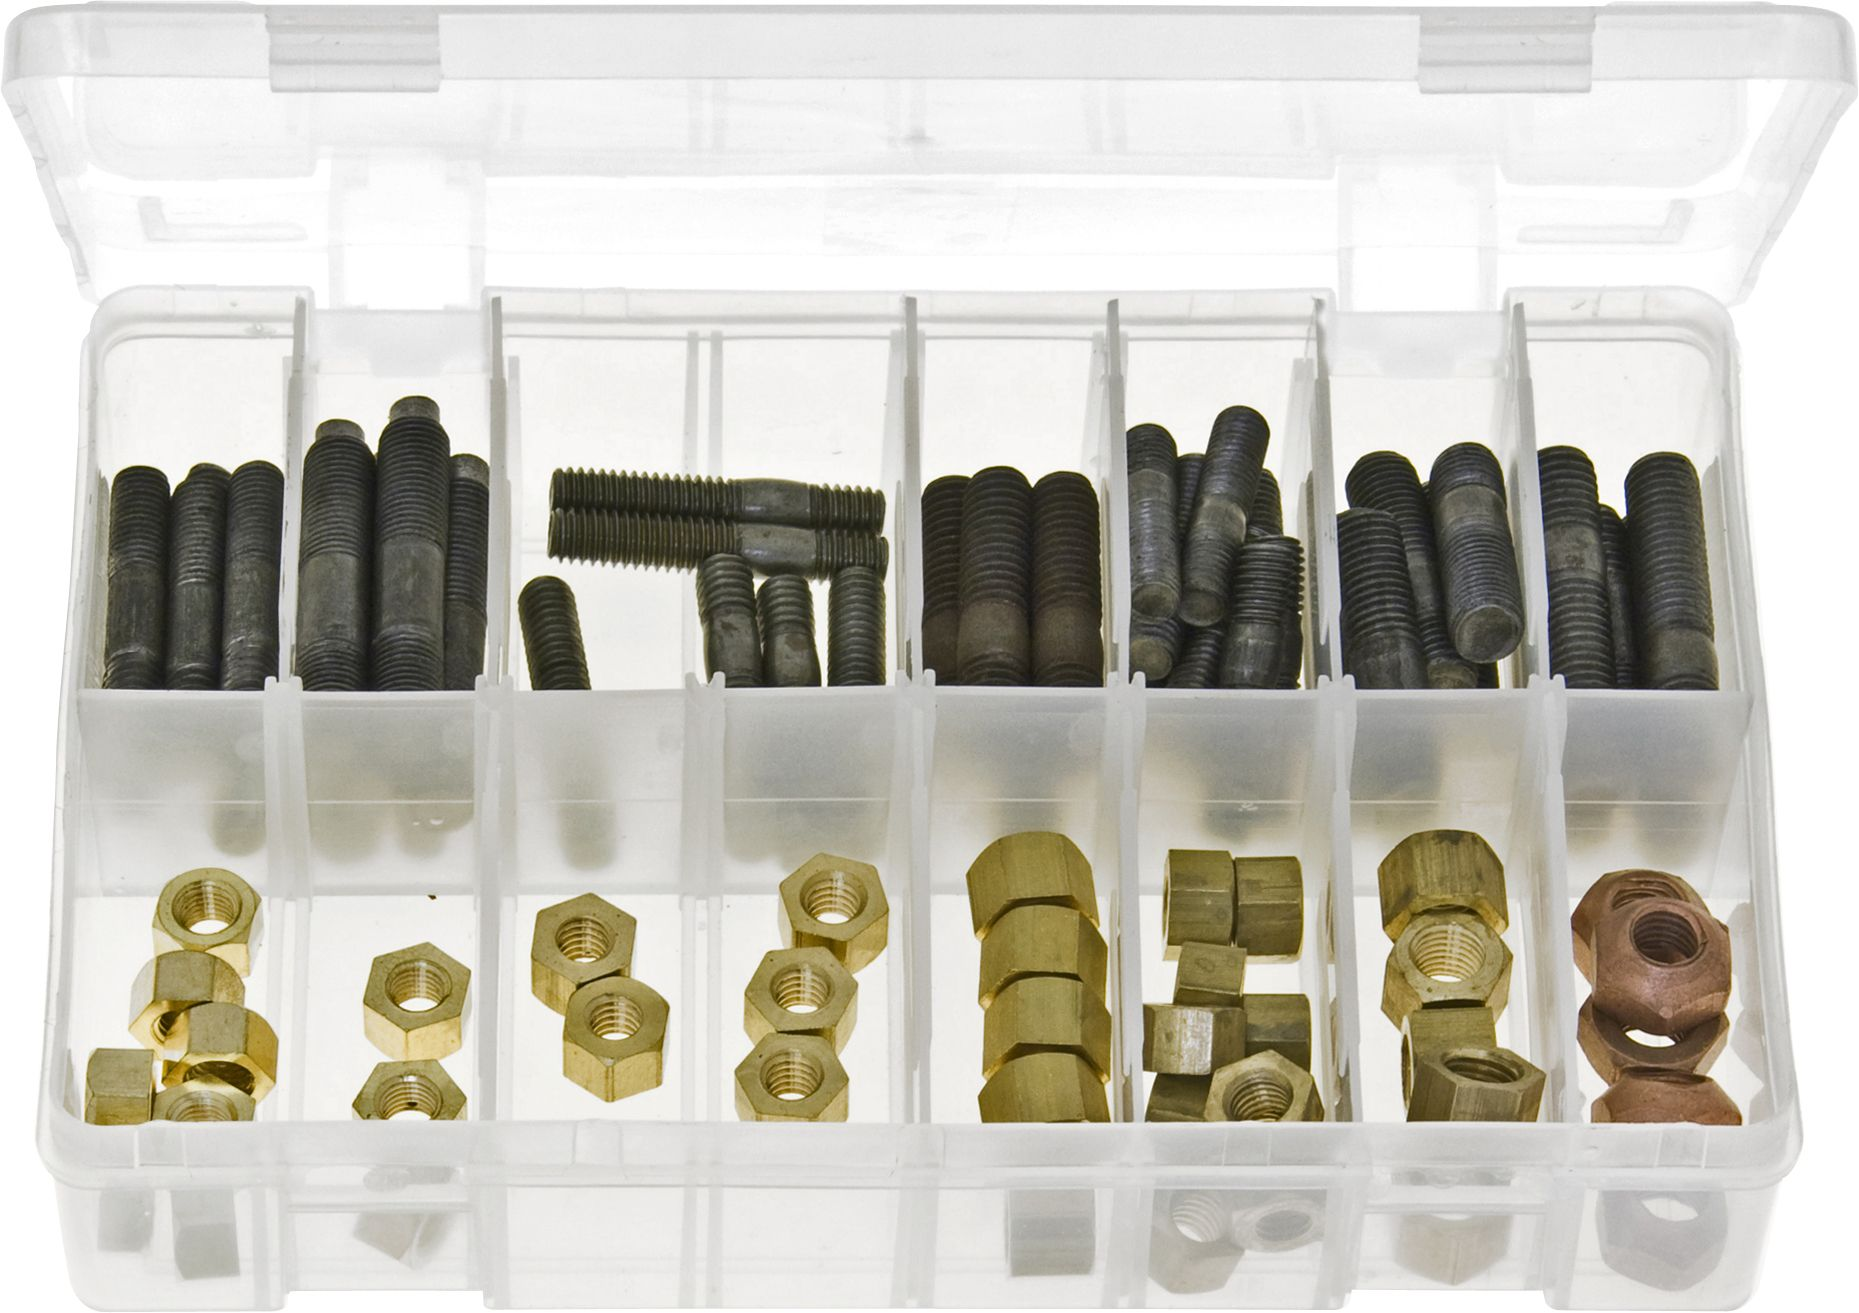 Assortment Box of Exhaust Manifold Studs & Nuts - Metric & Imperial